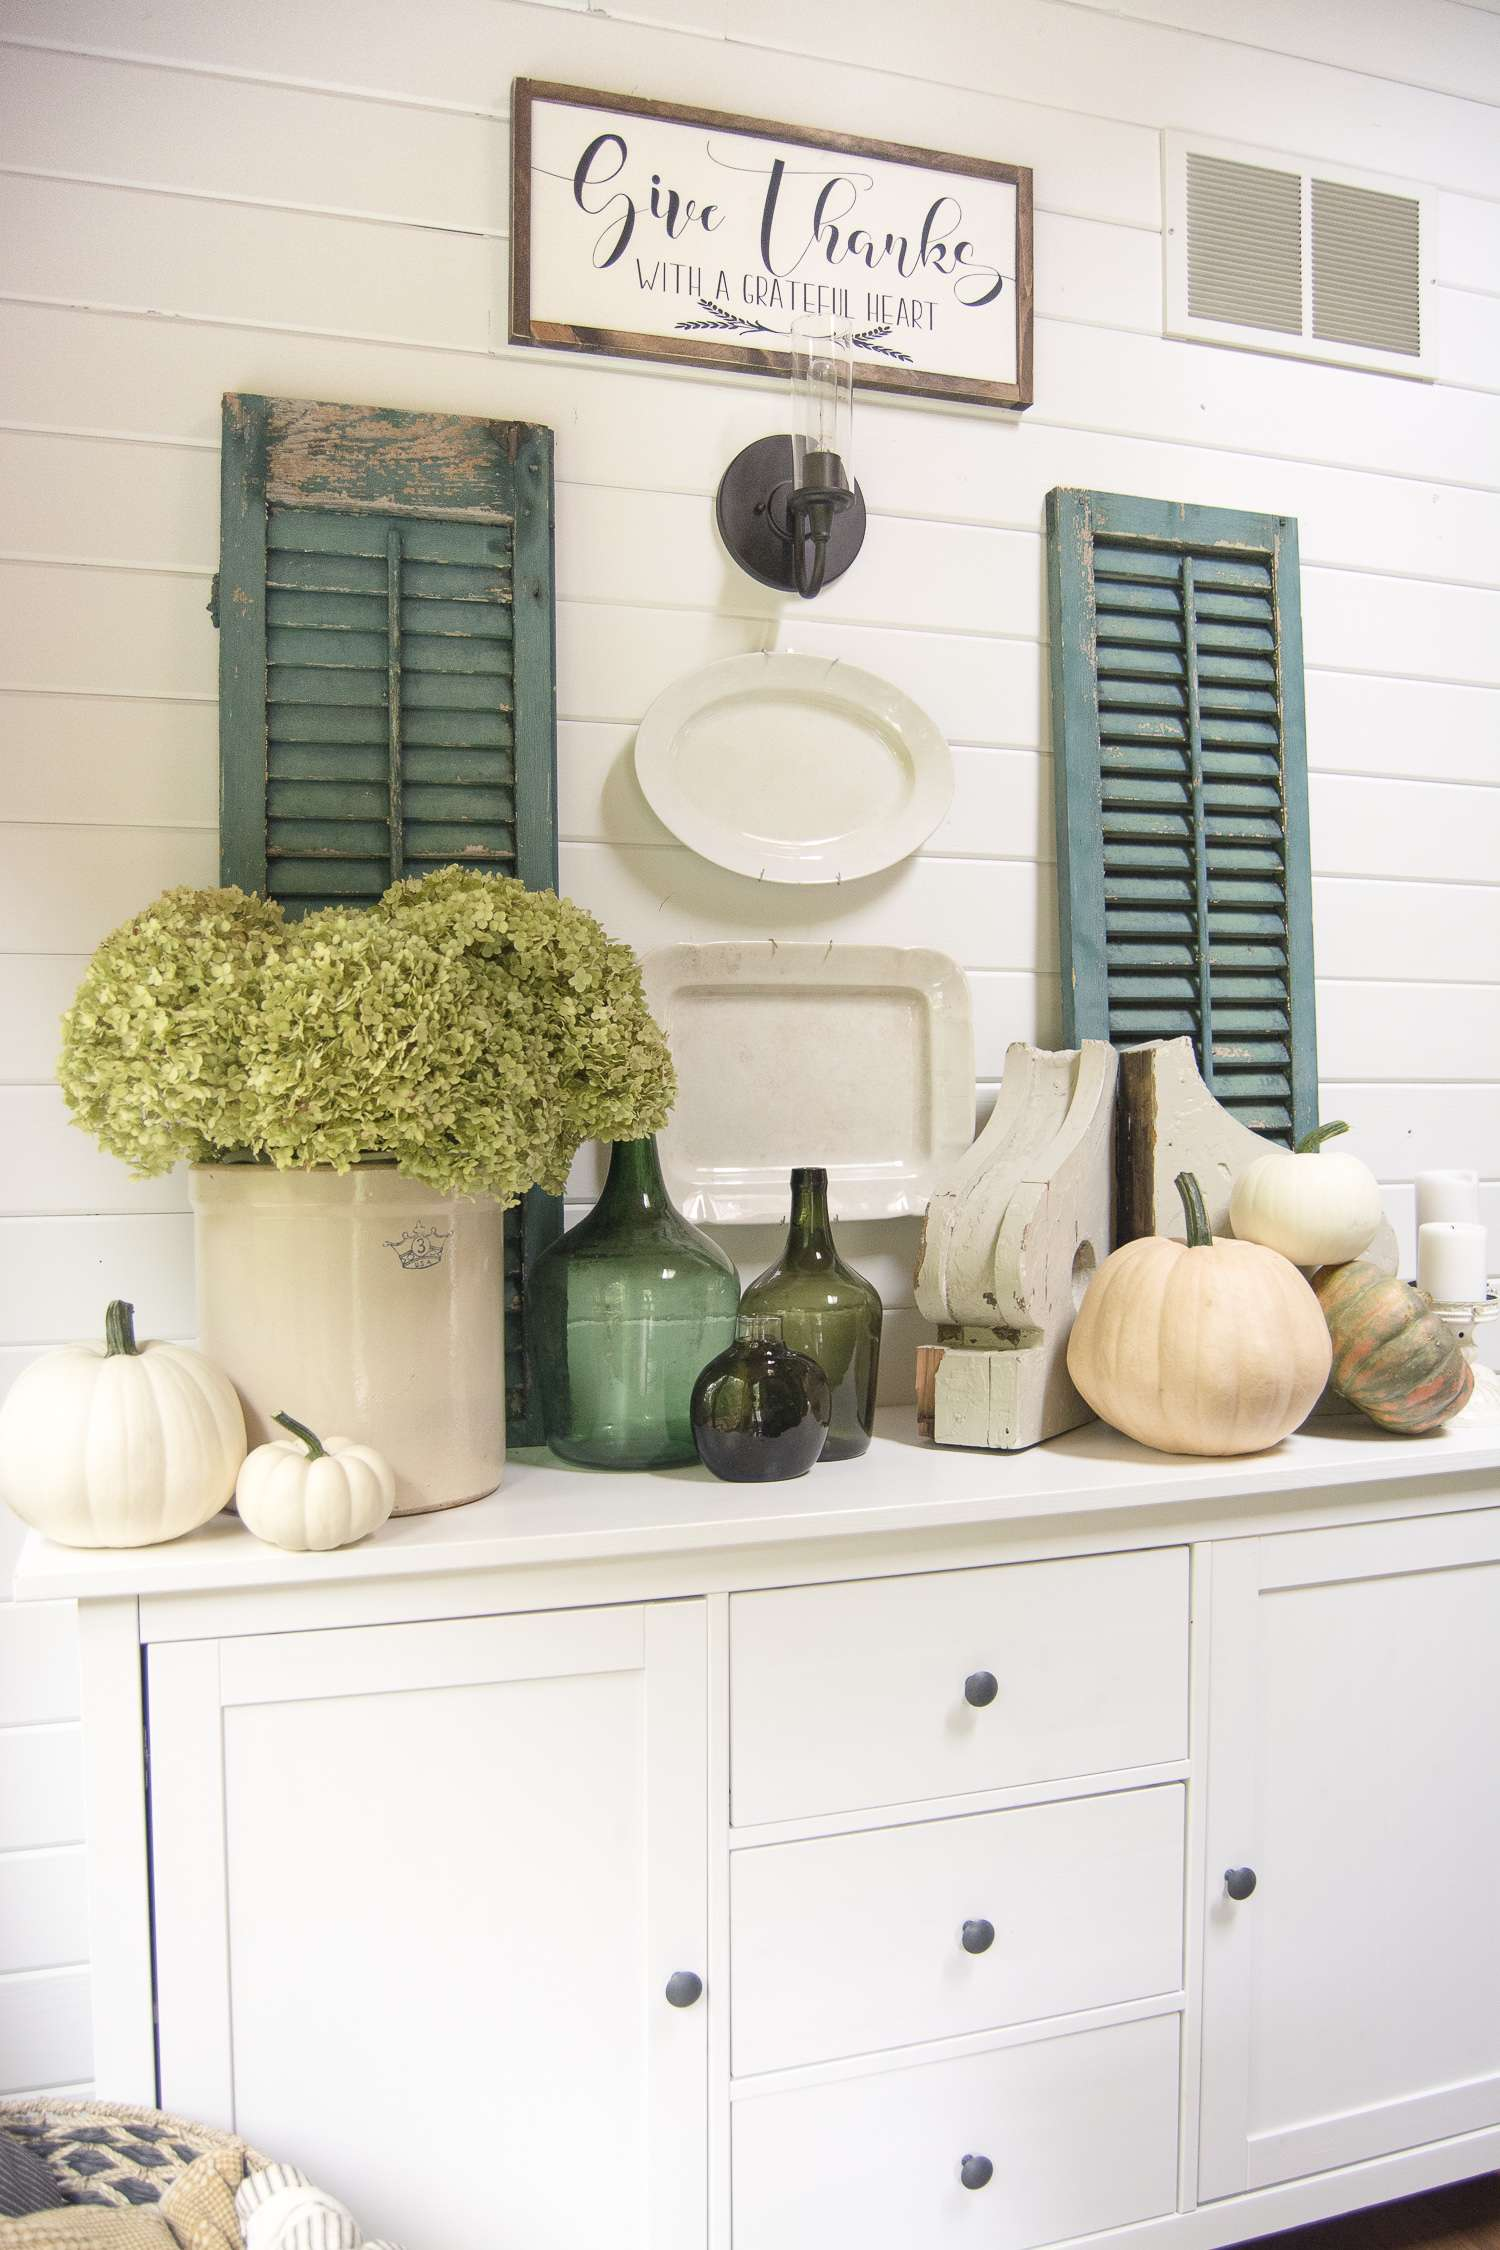 Dining in the Fall | Read more to see simple and affordable fall decor ideas for the kitchen and dining room! #falldecorideas #diningroomdecor